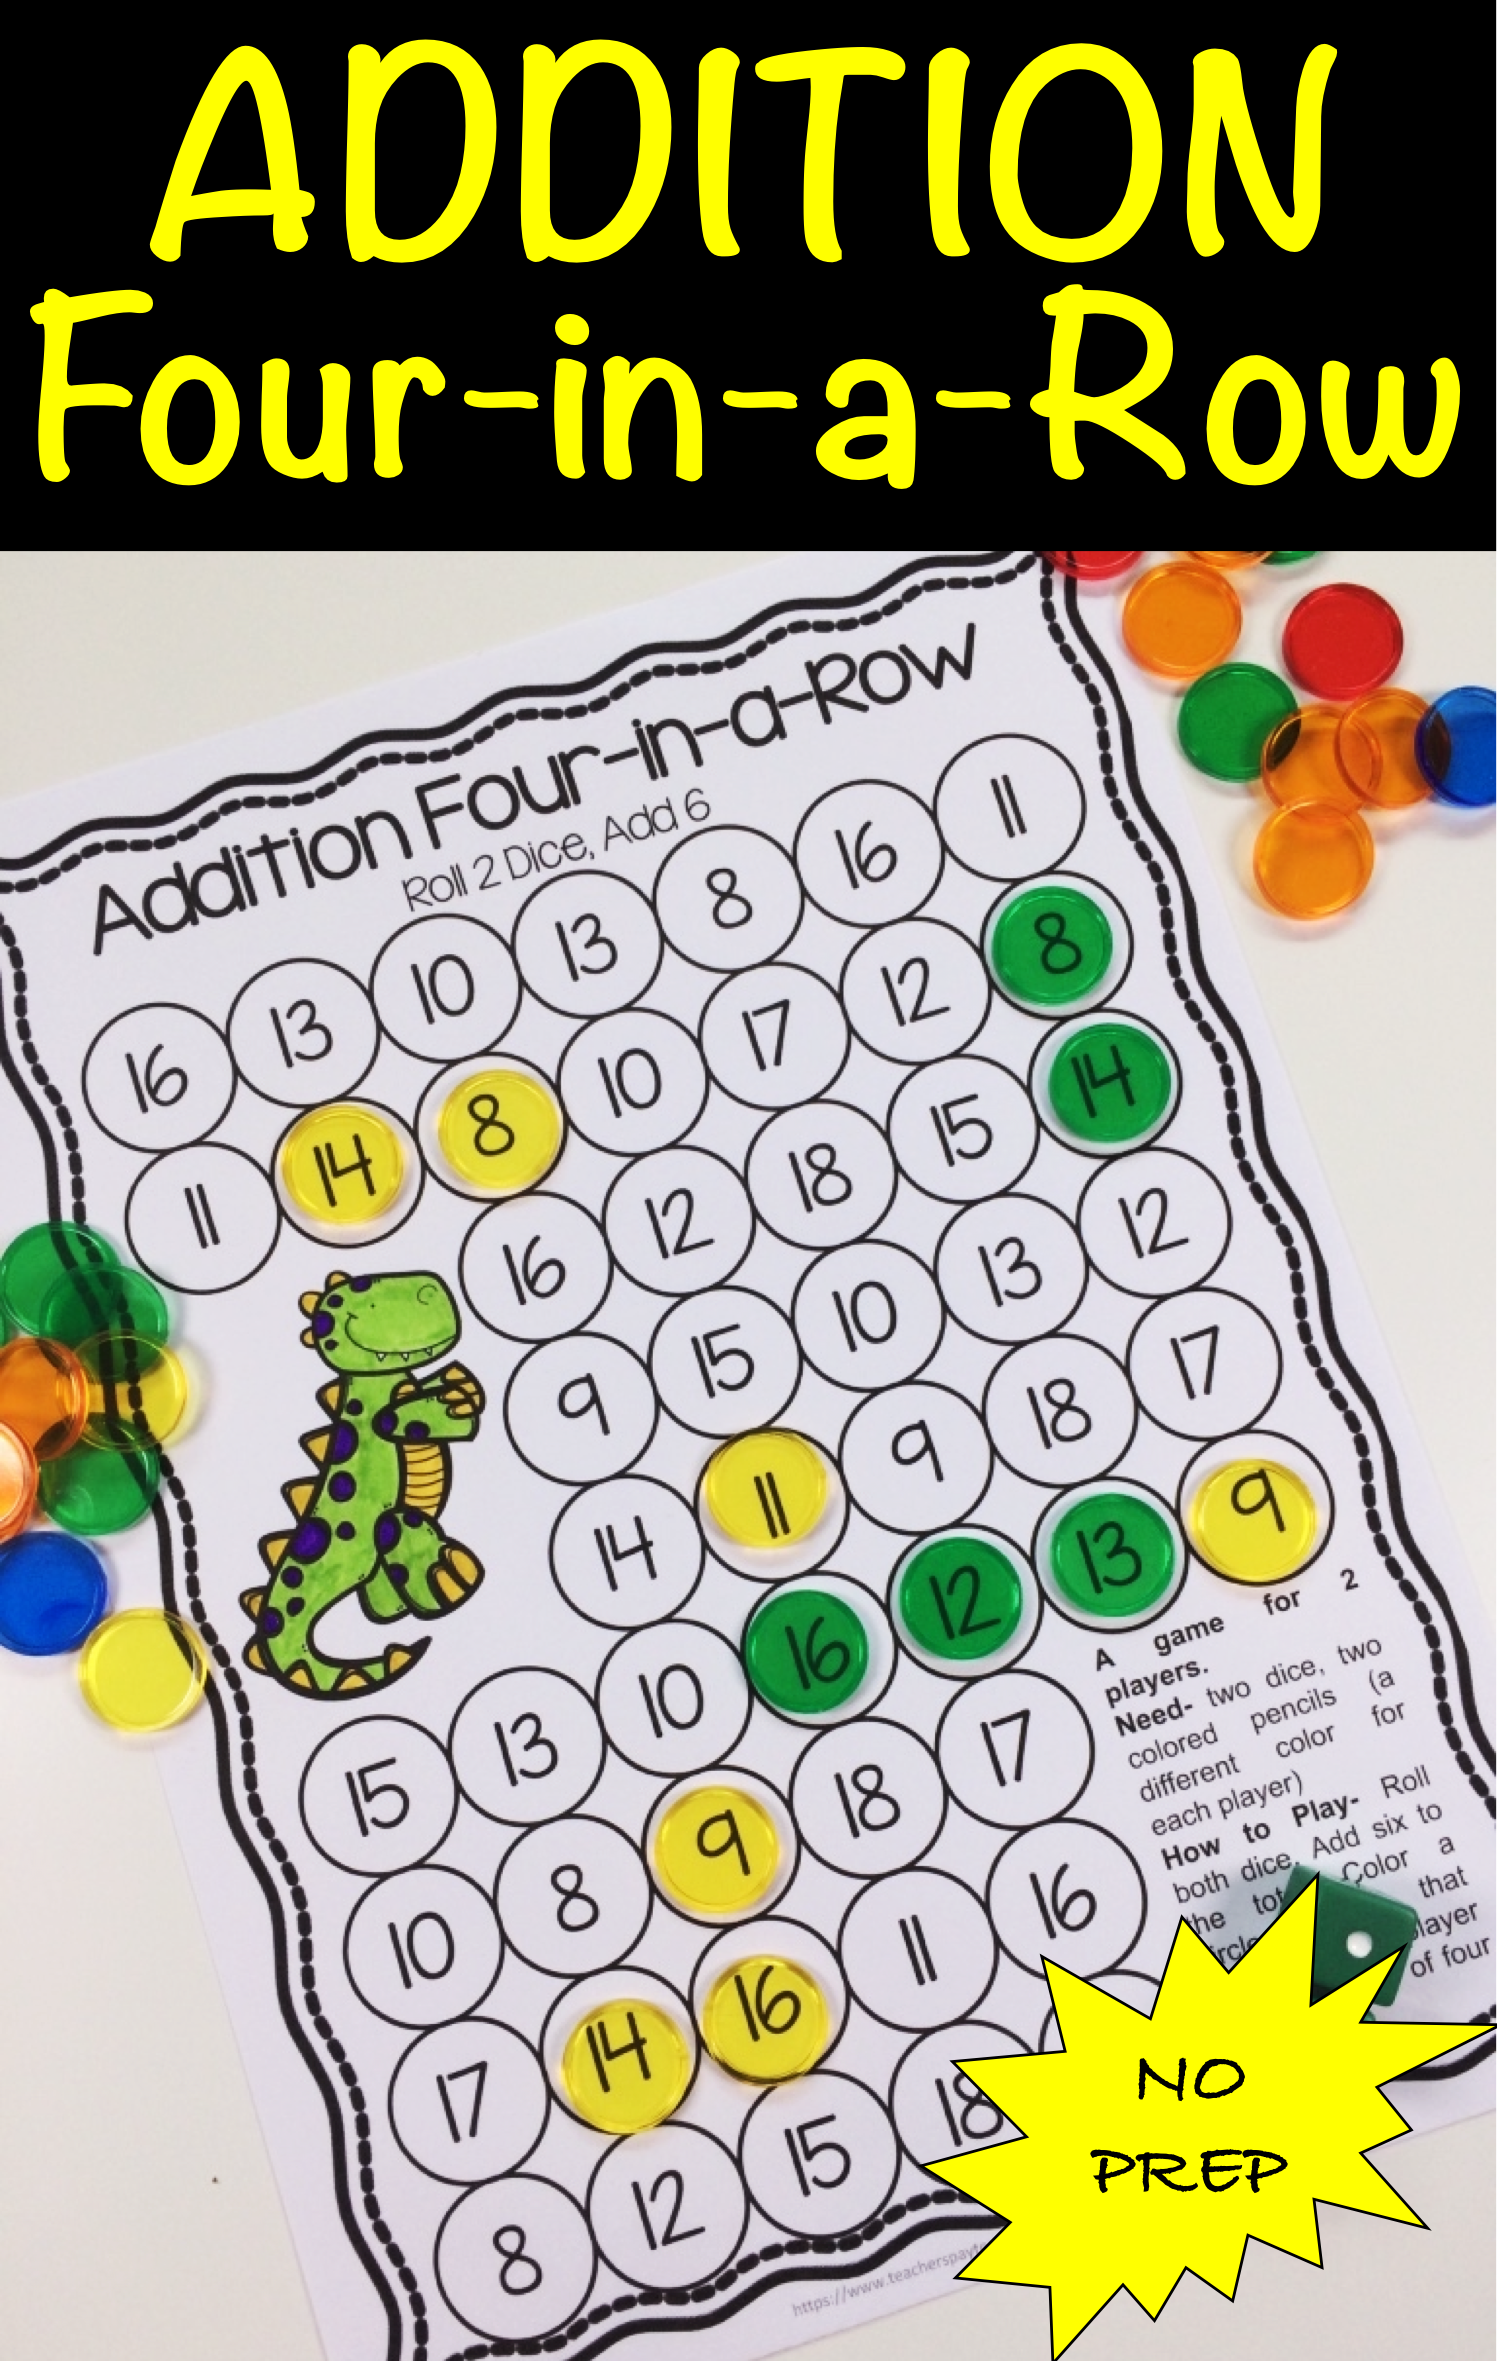 Addition Four In A Row A No Prep Game For Two Players For Practising Basic Addition Adding 1 To 10 Contains 20 Different Math Games Fun Math Fun Education [ 2361 x 1497 Pixel ]